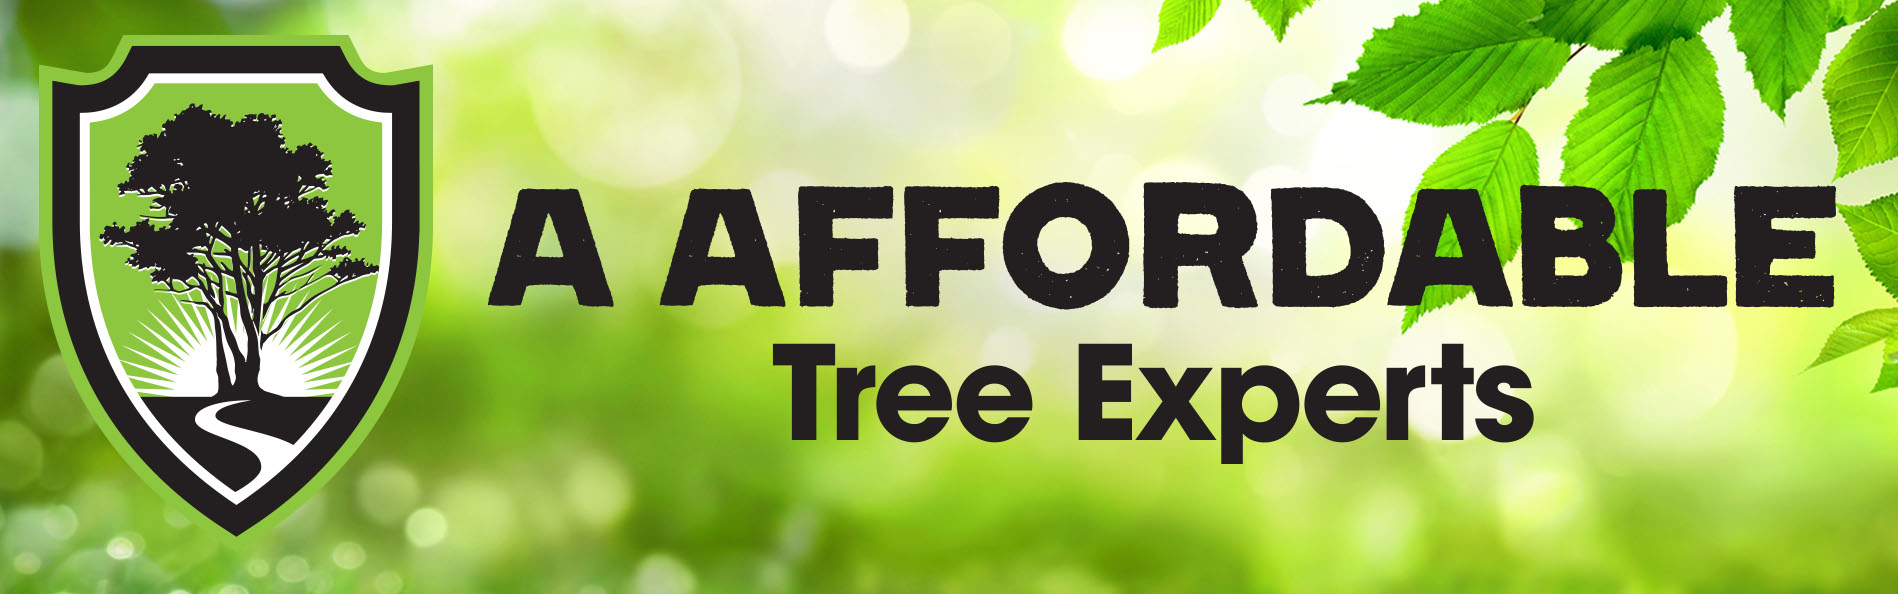 A Affordable Tree Experts About